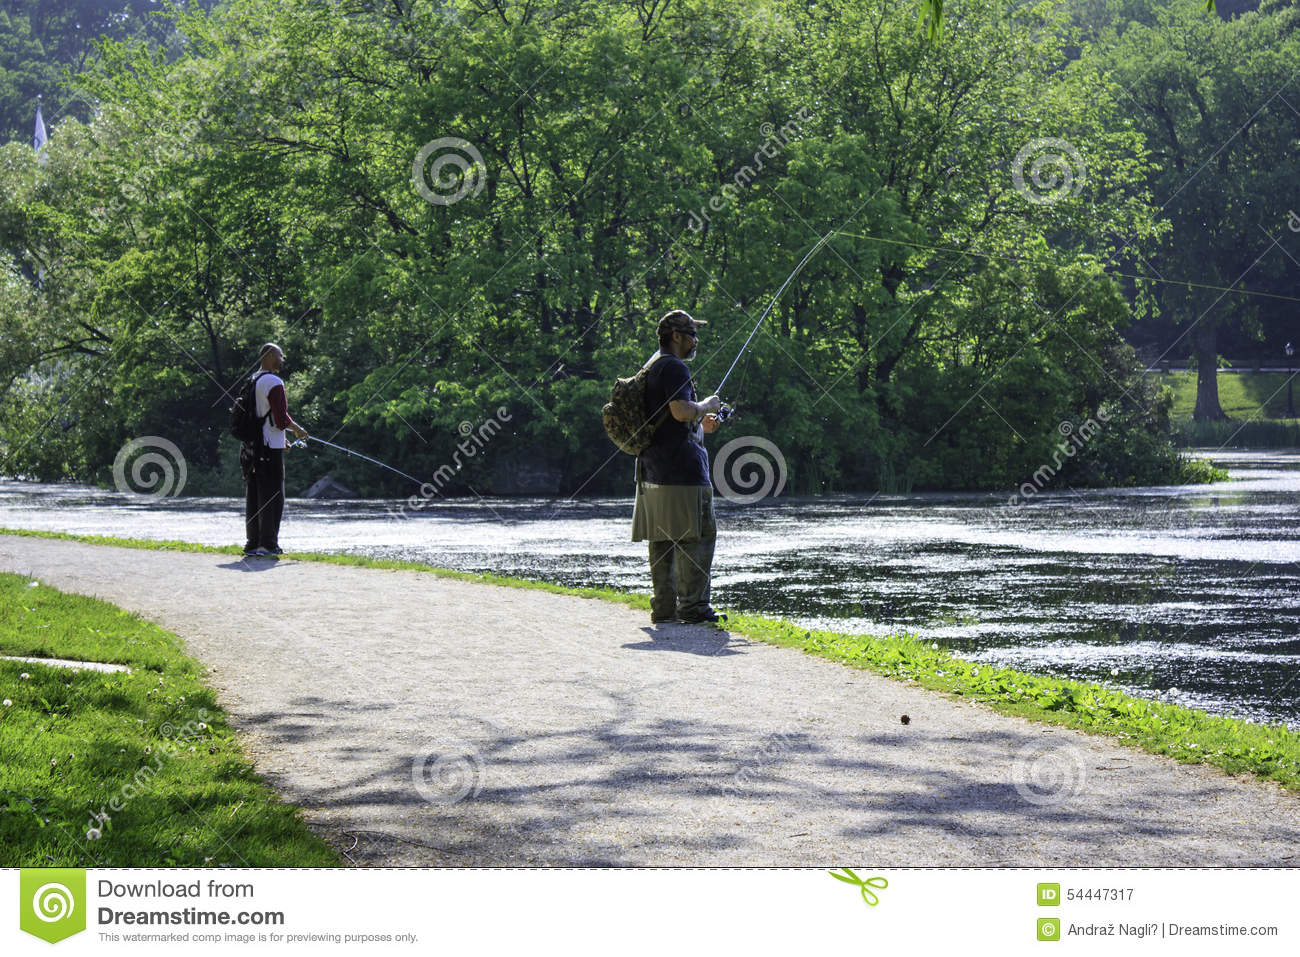 Two fishermen in central park new york city editorial for Fishing in new york city